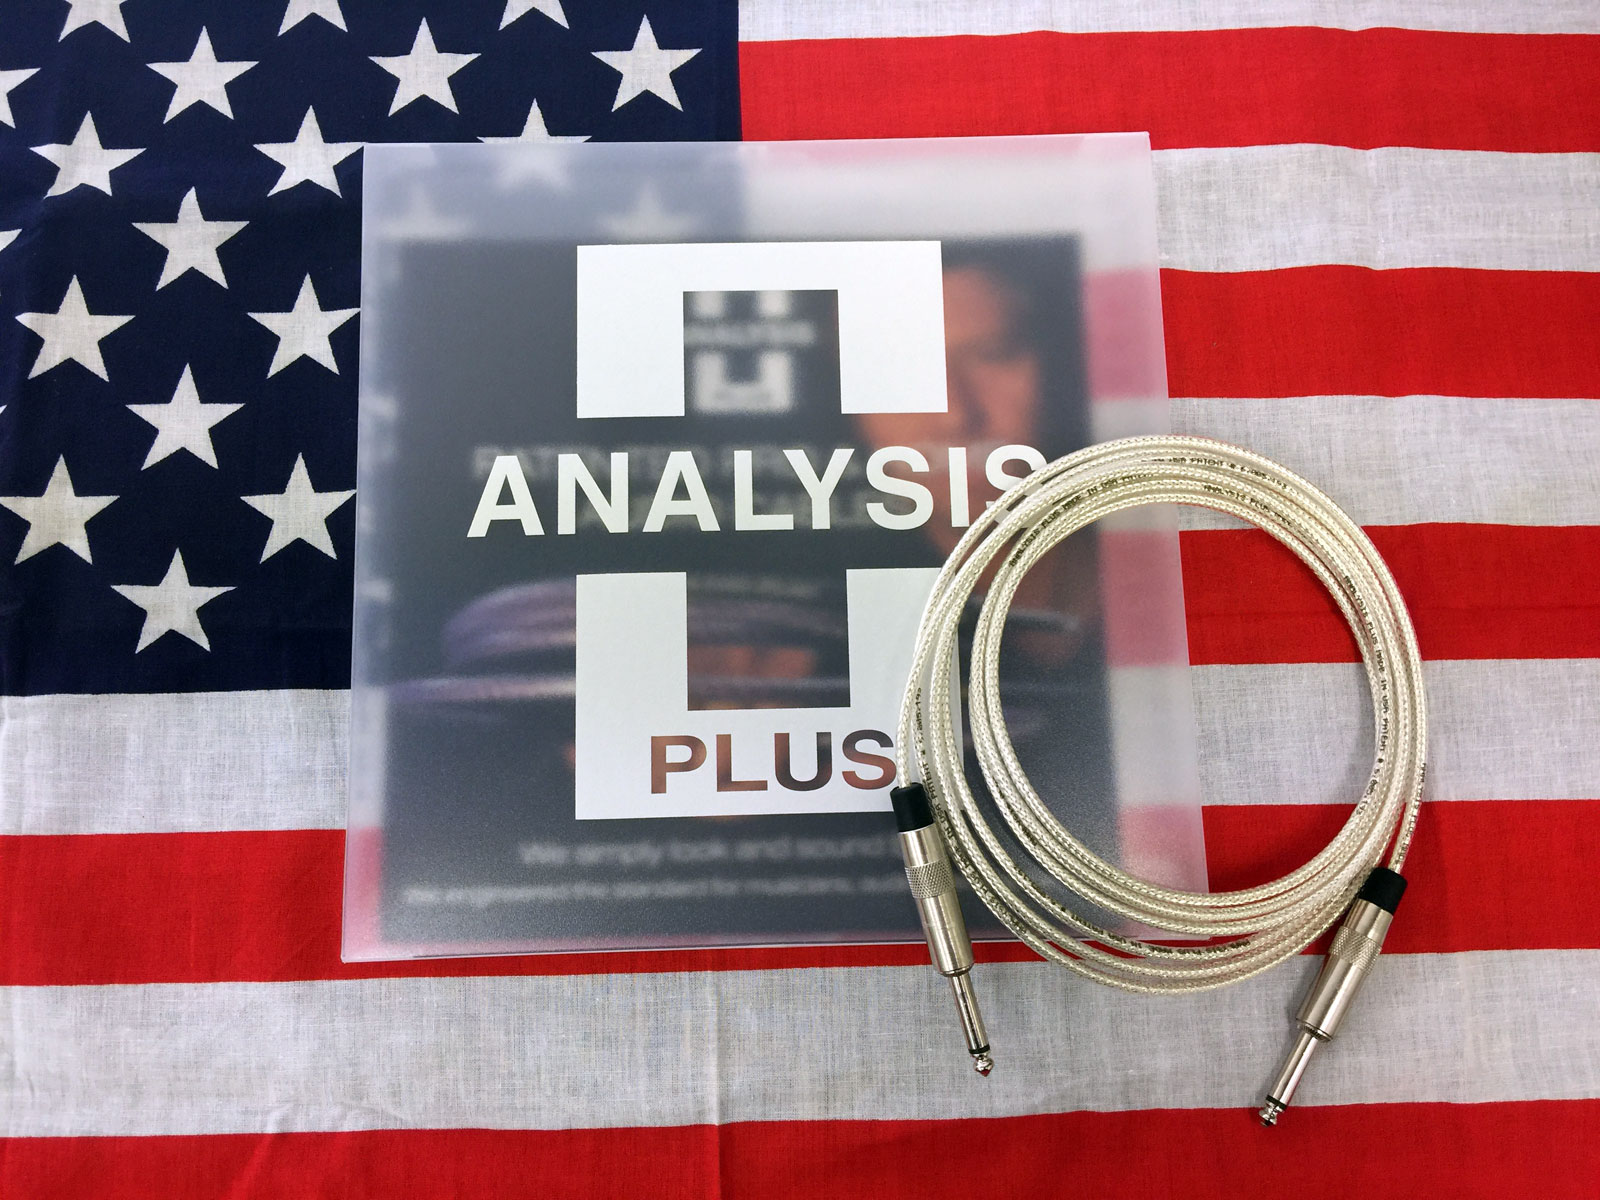 Live gig perfection correspondence, flexible cable high-purity anoxic  copper + pure silver plating cable analysis plus mounted with a silver Oval  Shin